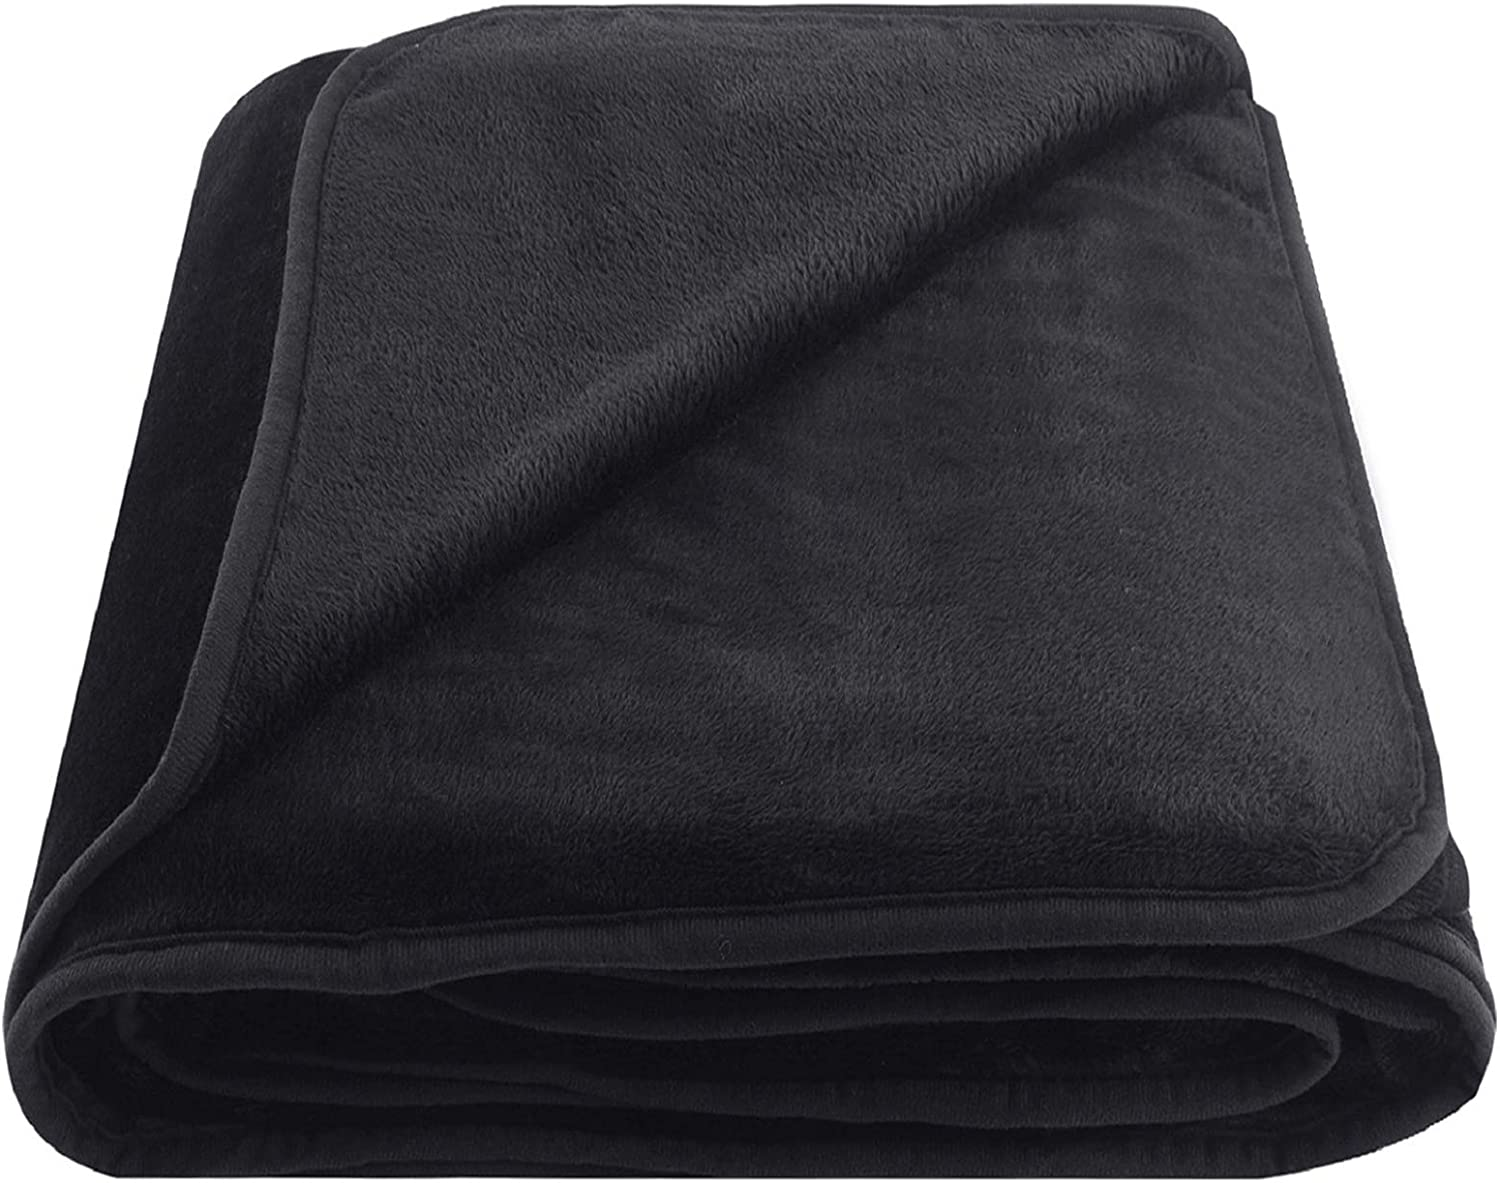 """OBOEY Polar Fleece Blankets Queen Size for Spring Summer All Season 350GSM Lightweight Microfiber Anti-Static for Bed, Couch, Home, Sofa, Car, Airplane, and Outdoors 90"""" x 90""""(Dark Gray Queen)"""